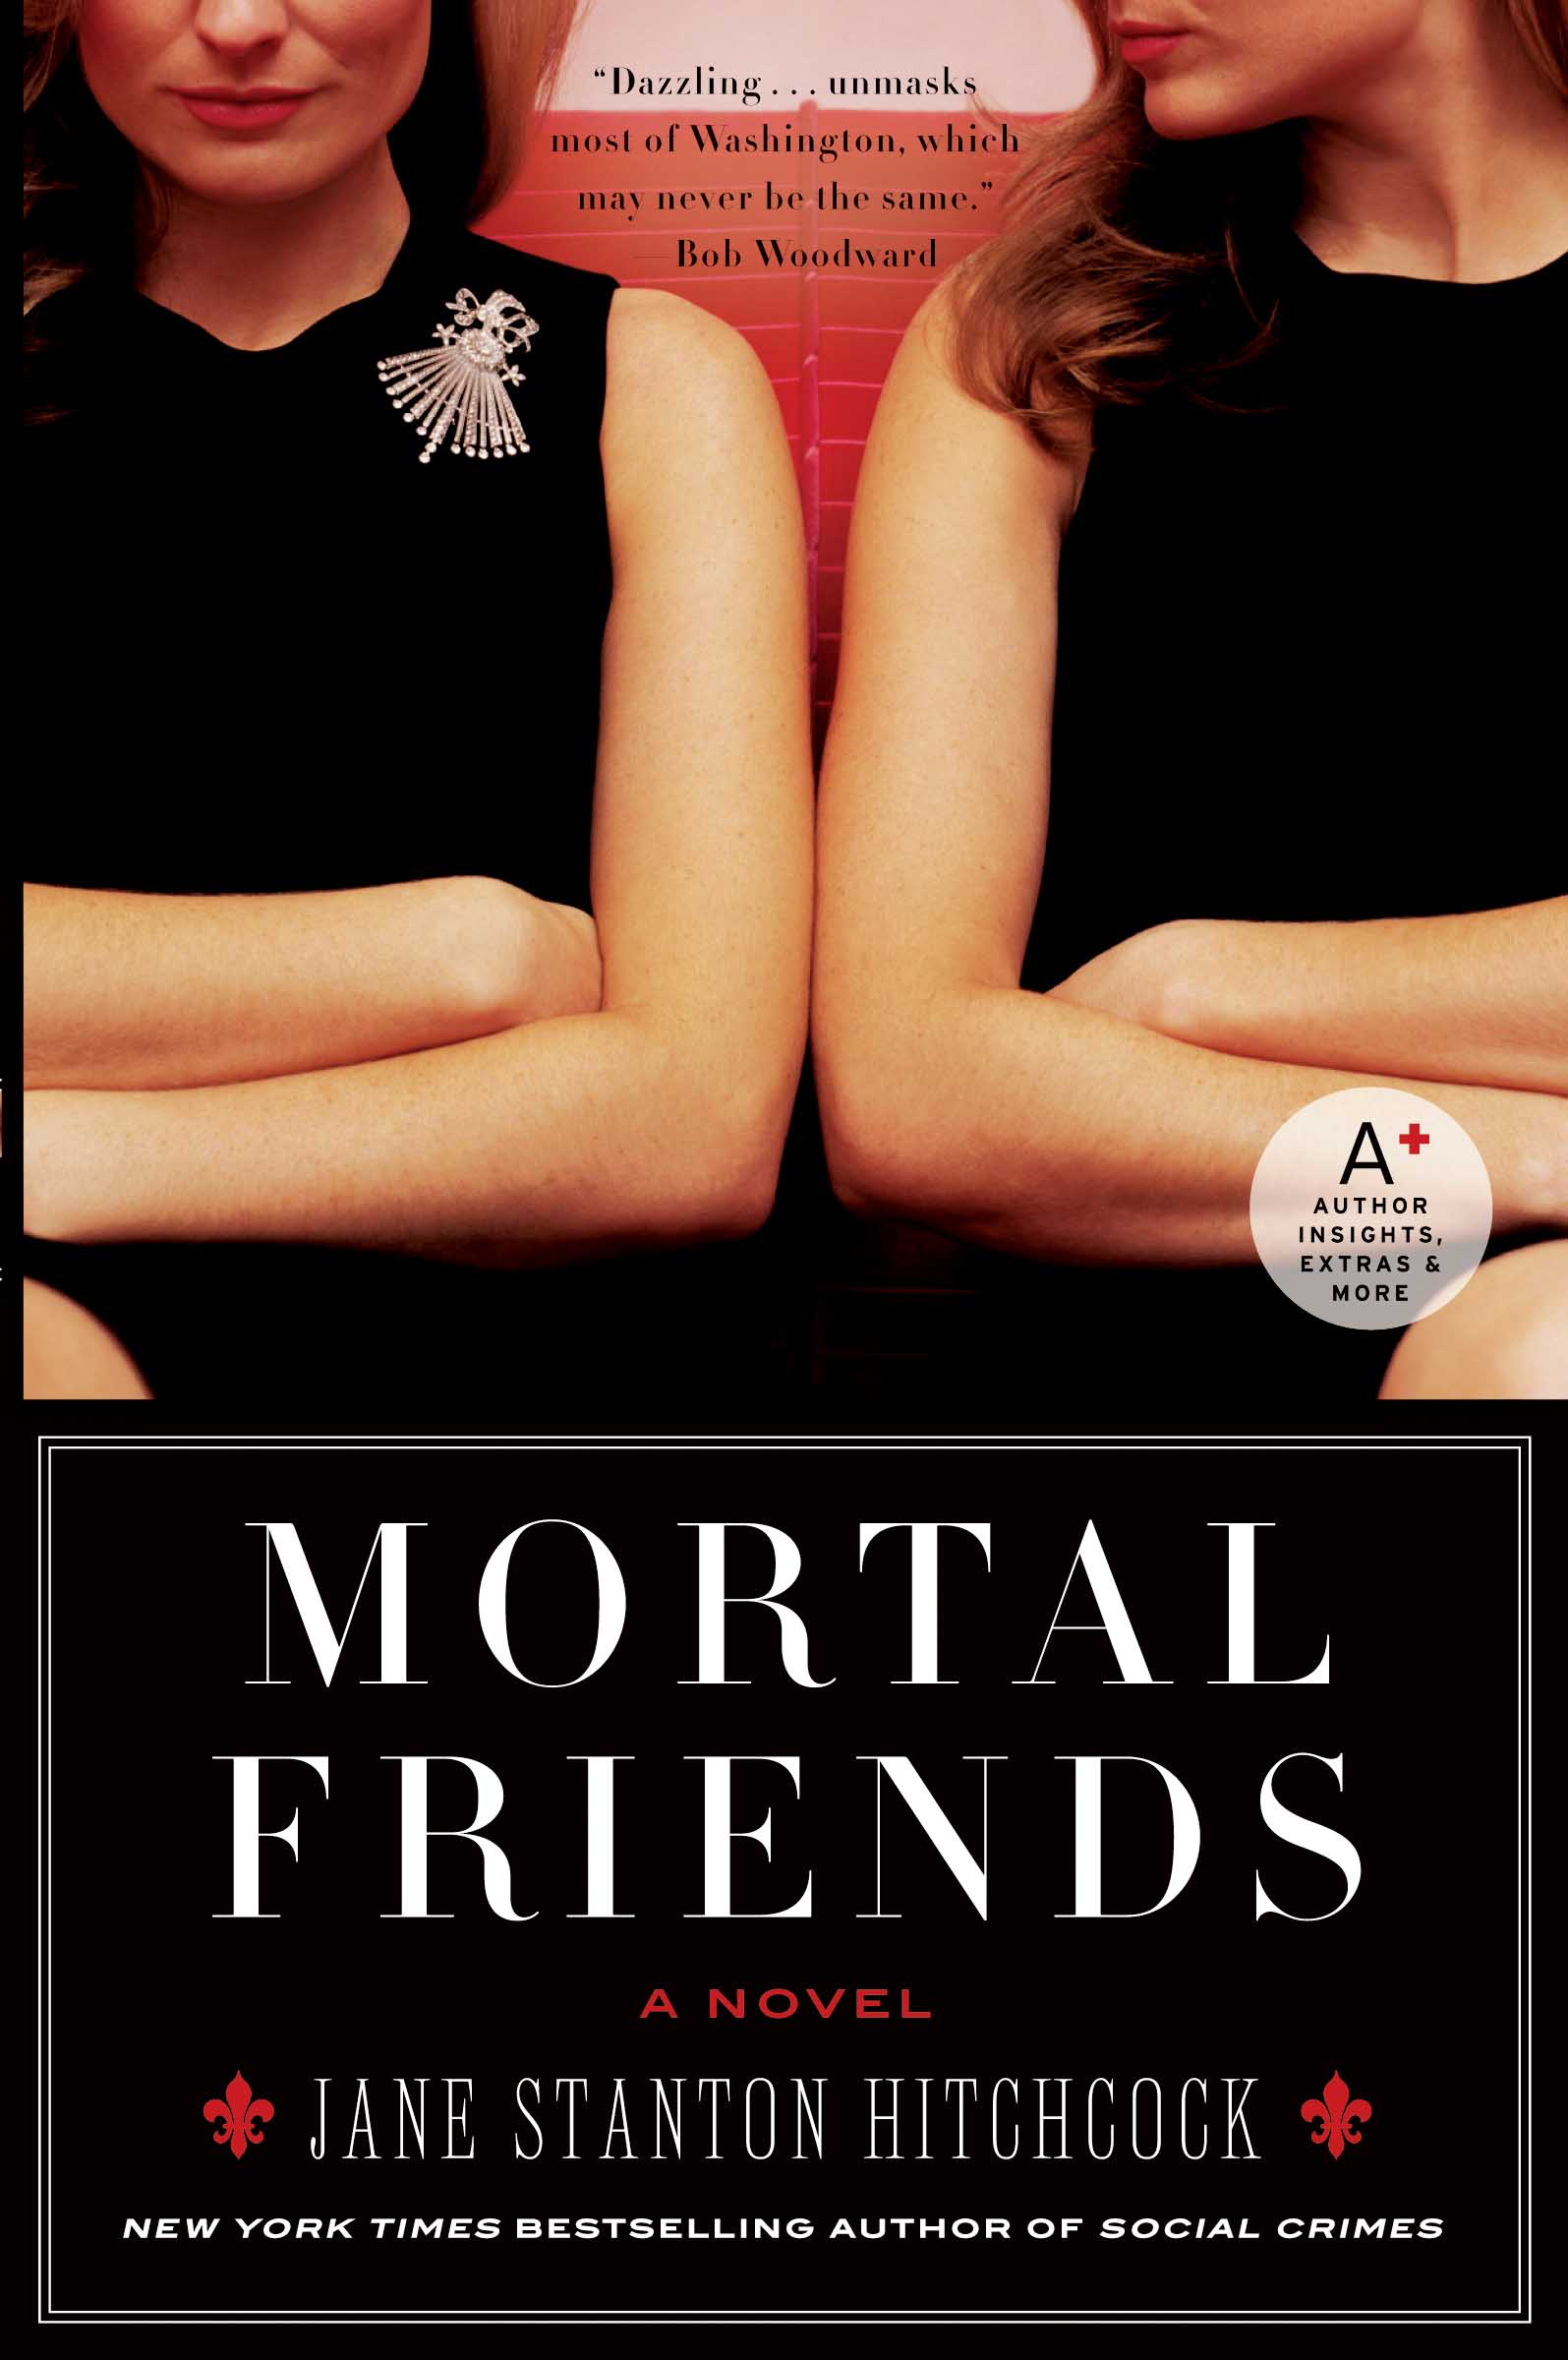 Mortal Friends - Jane Stanton Hitchcock